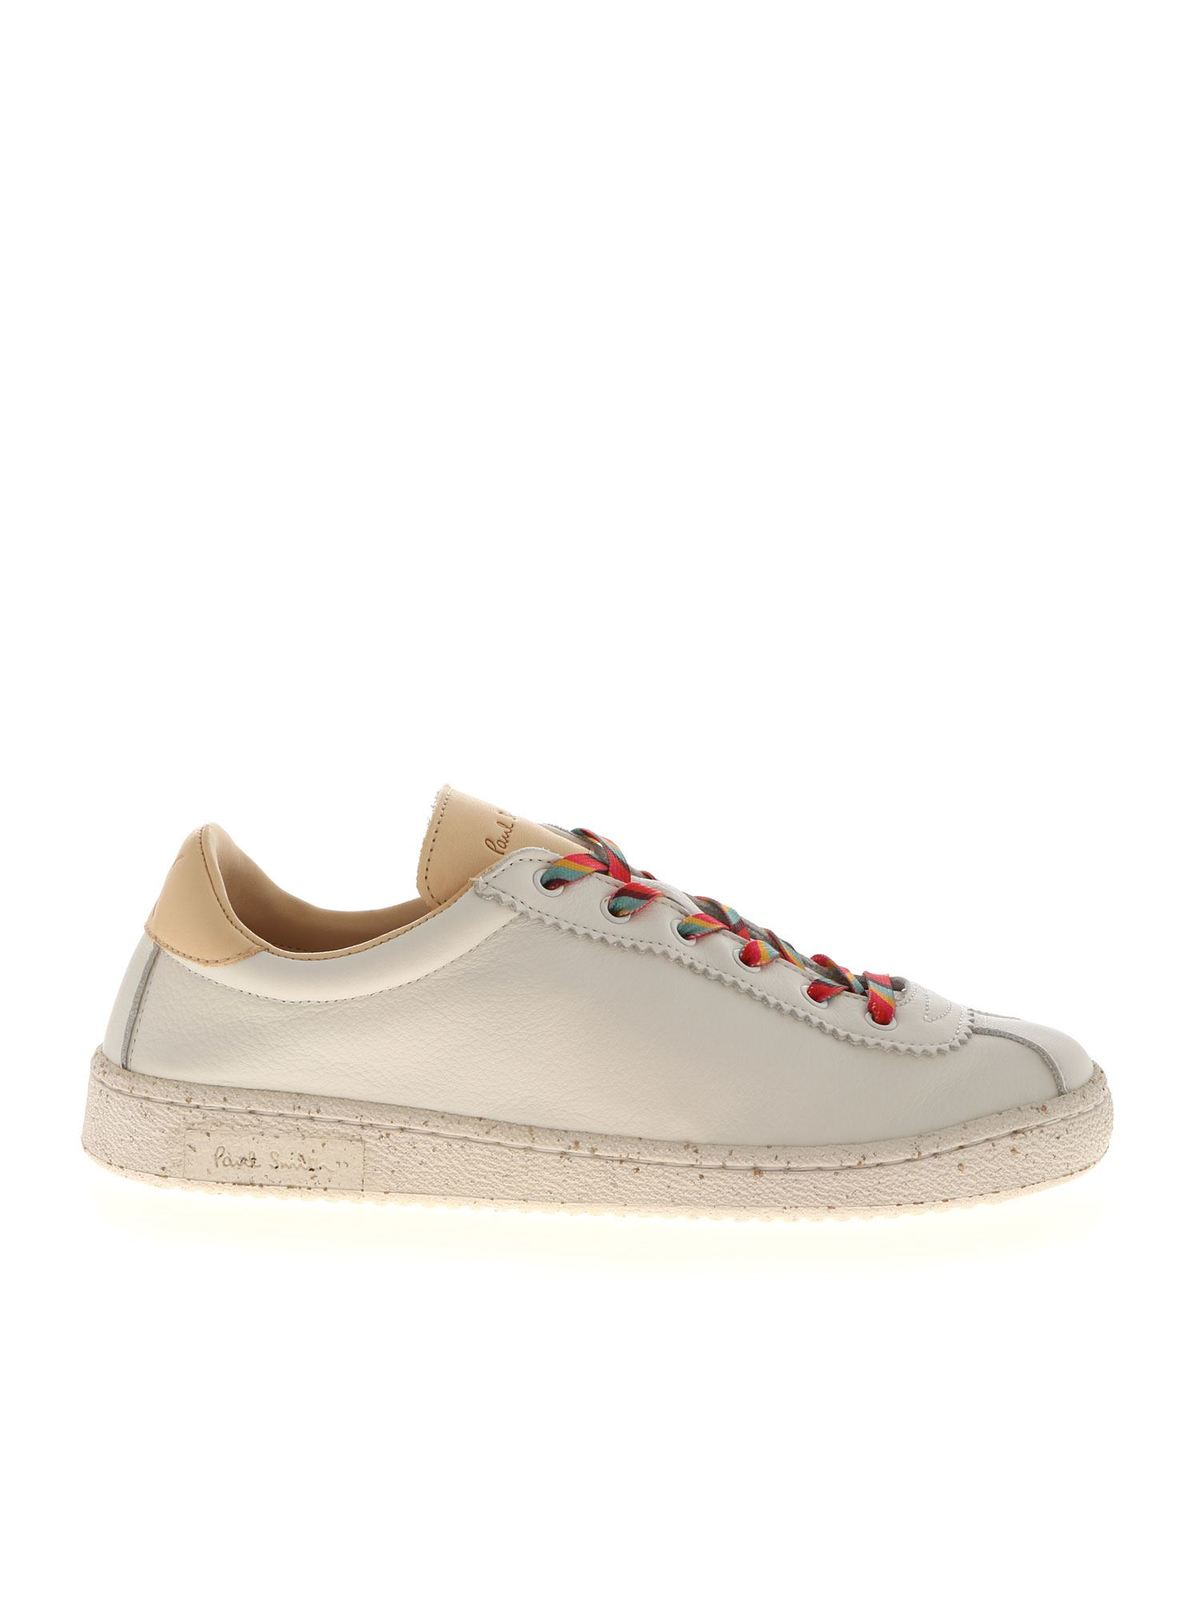 Paul Smith DUSTY SNEAKERS IN WHITE